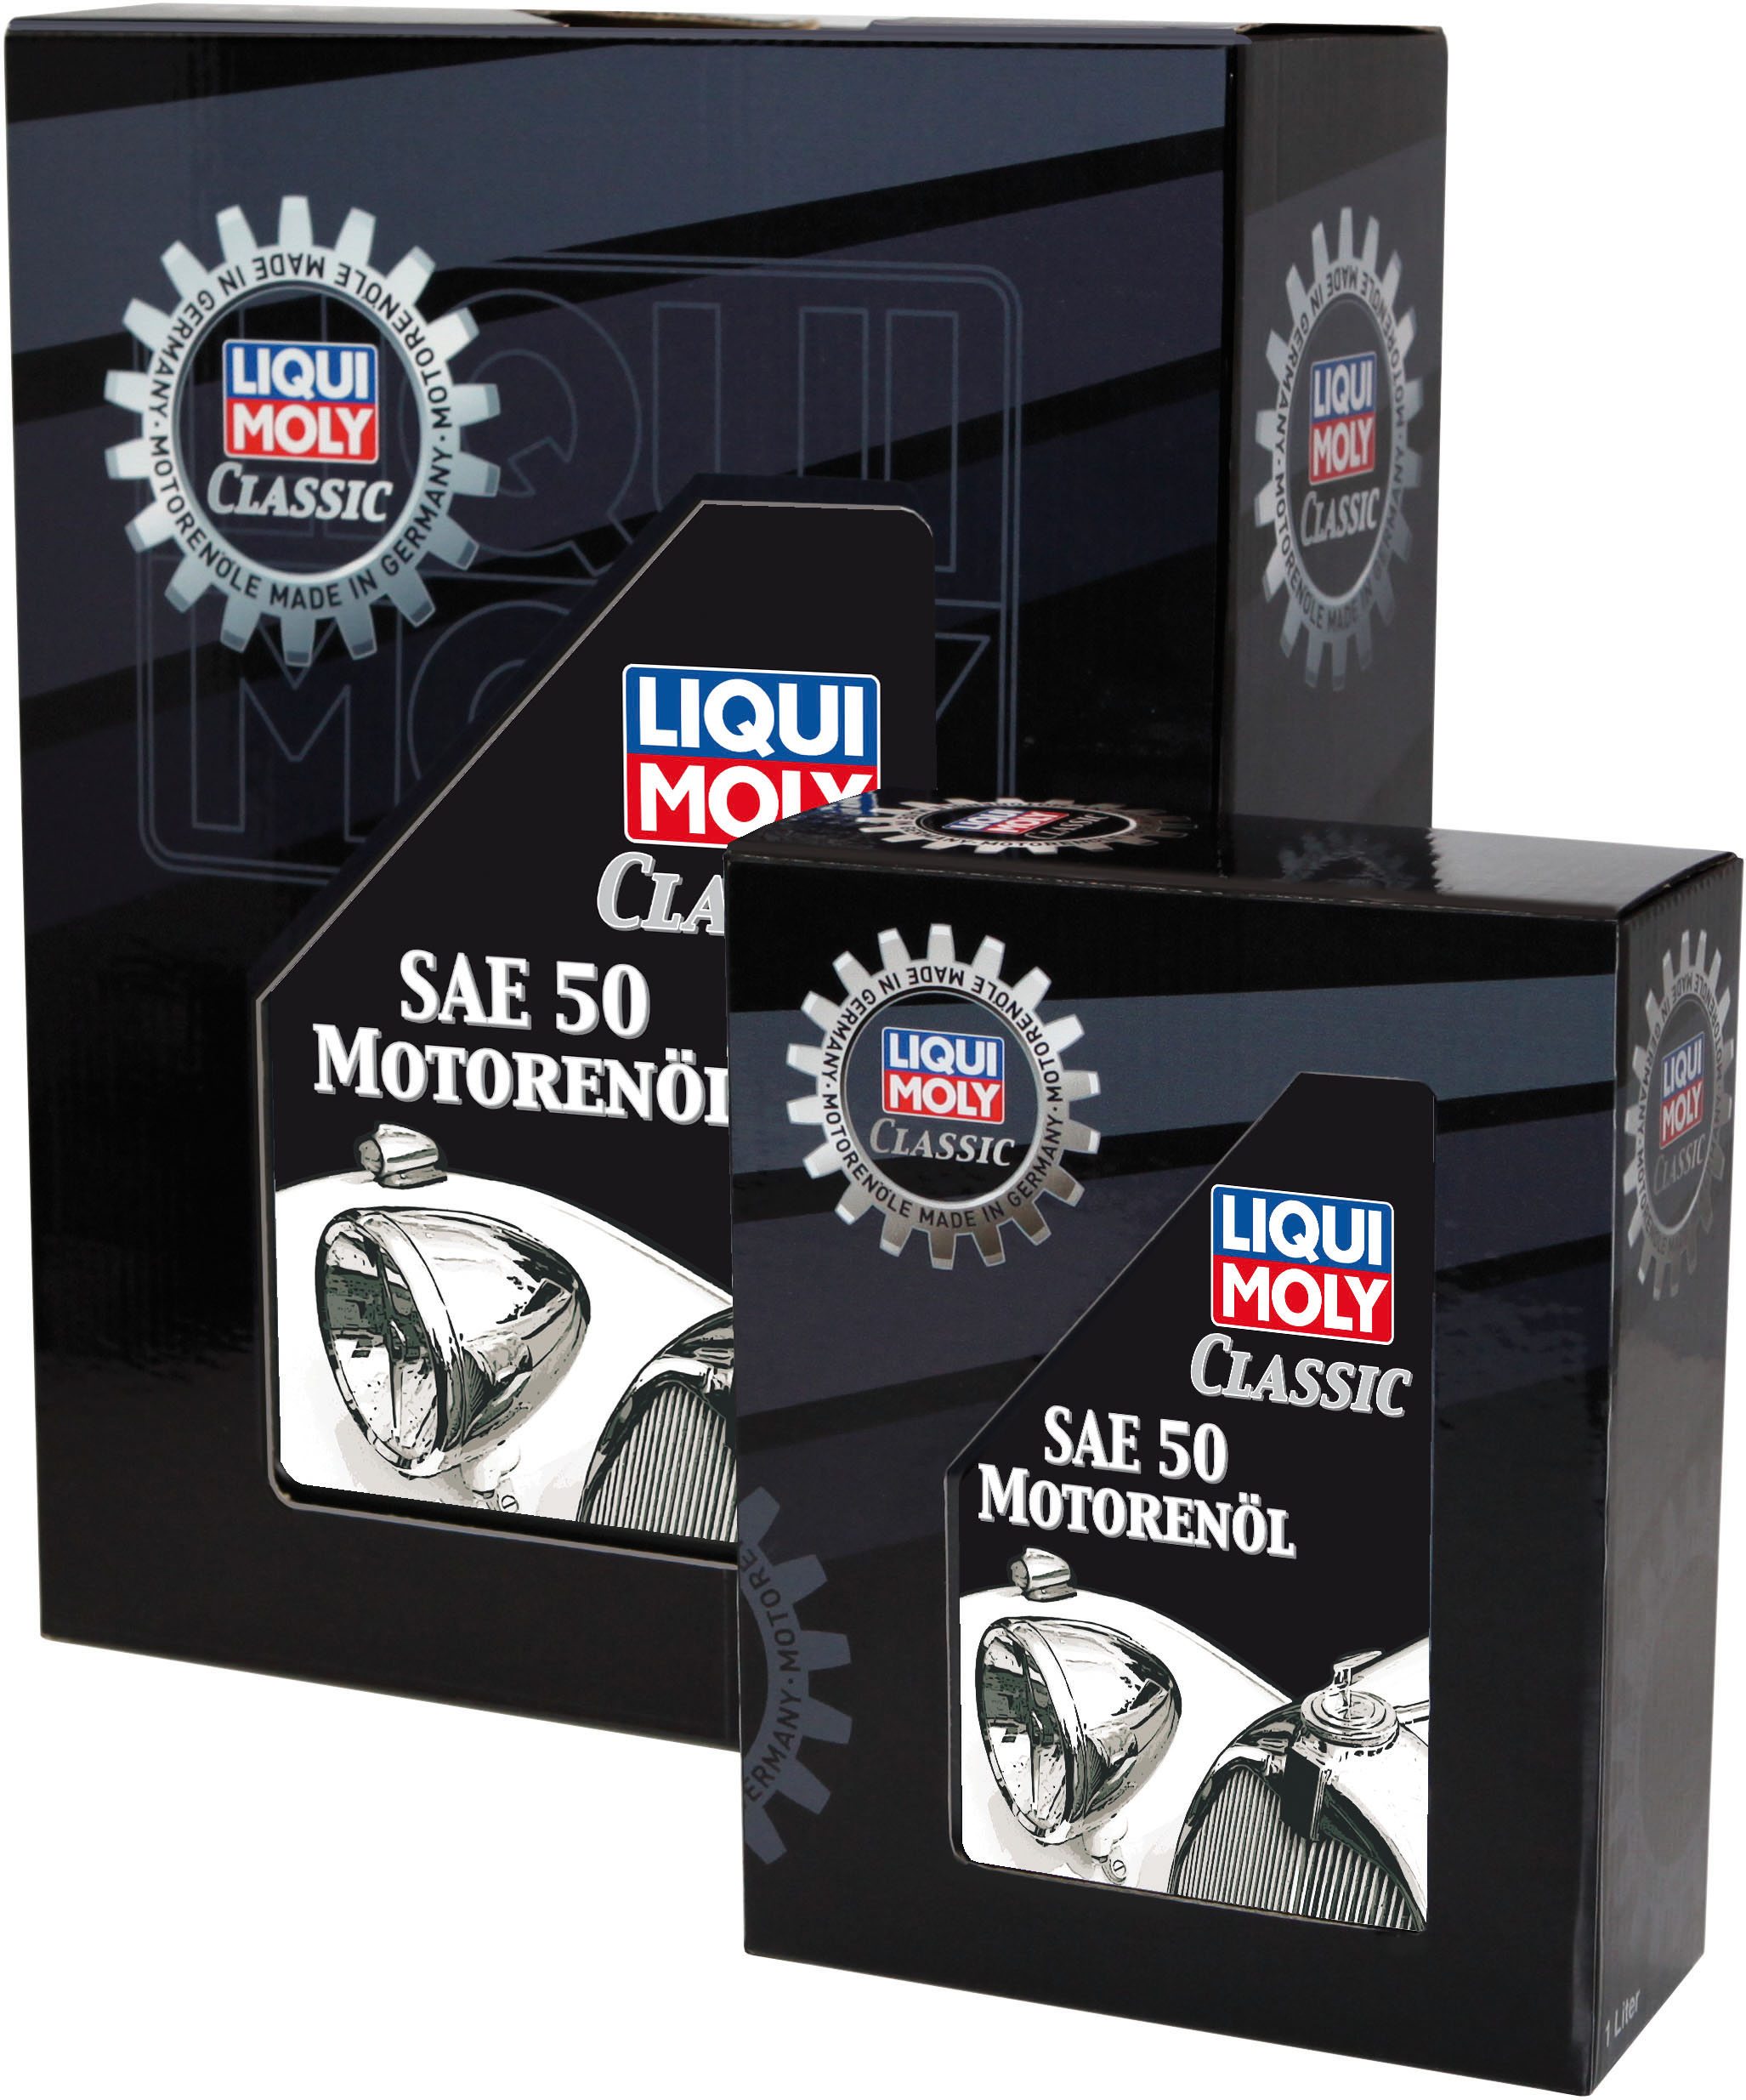 motoroel king liqui moly classic liqui moly motor l sae 50. Black Bedroom Furniture Sets. Home Design Ideas